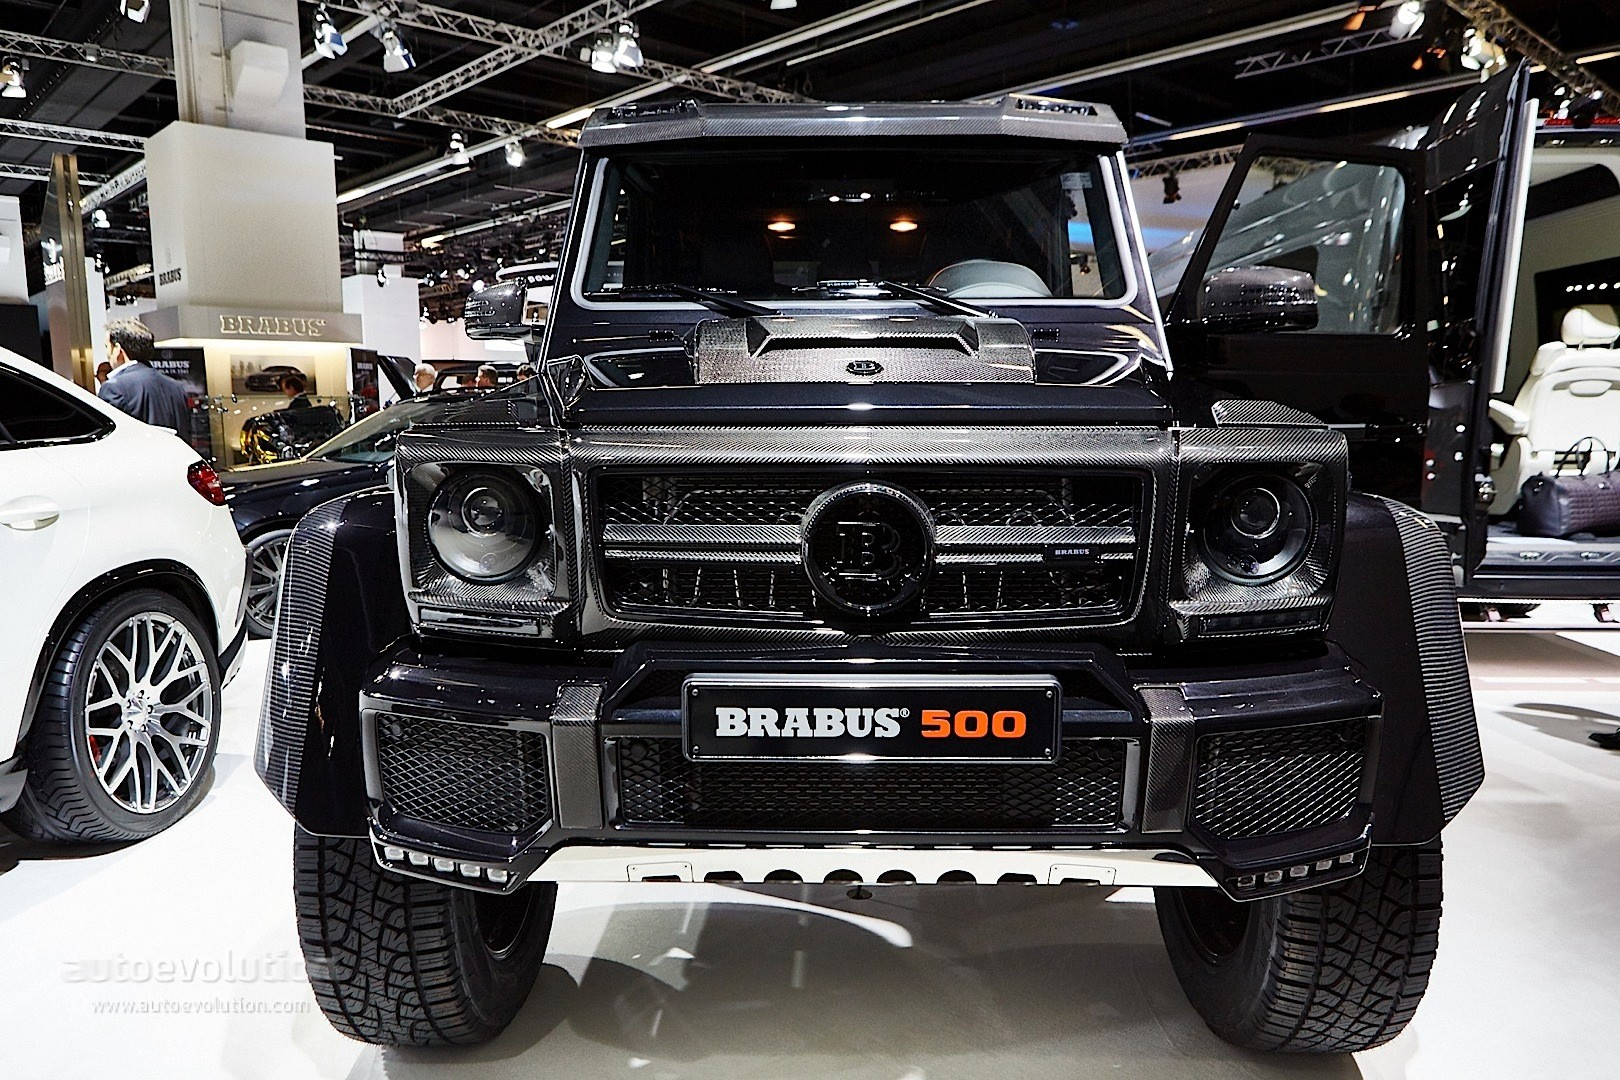 Brabus mercedes g500 4x4 and g class 850 biturbo widestar for Mercedes benz g 500